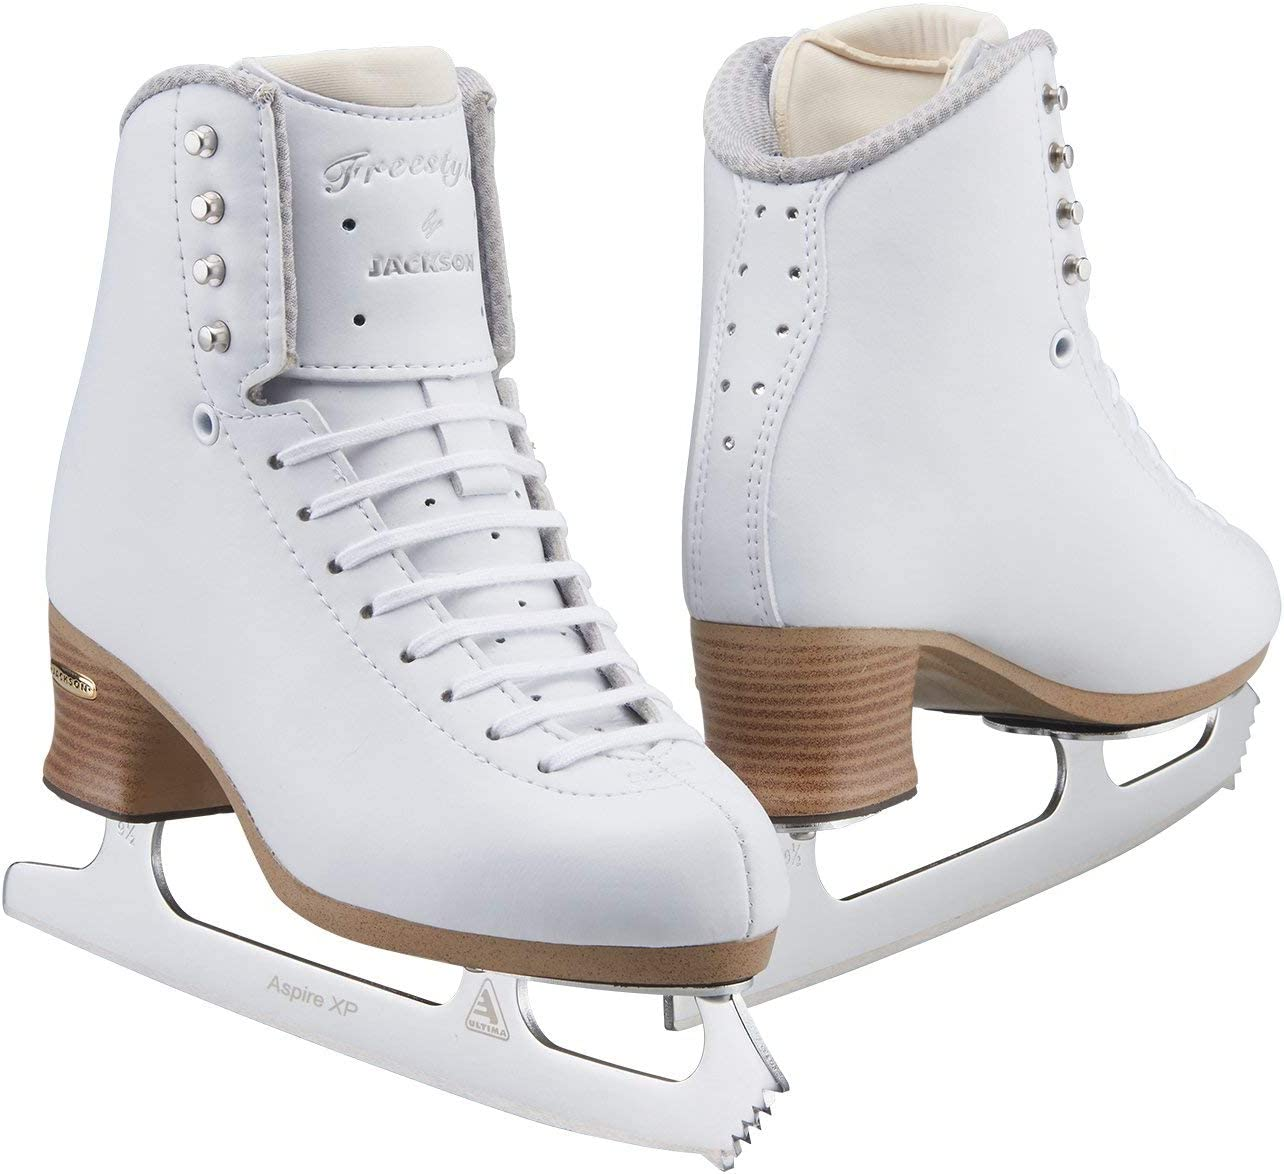 Jackson Ultima Freestyle Fusion/Aspire FS2190 FS2191/Figure Ice Skates for Women and Girls